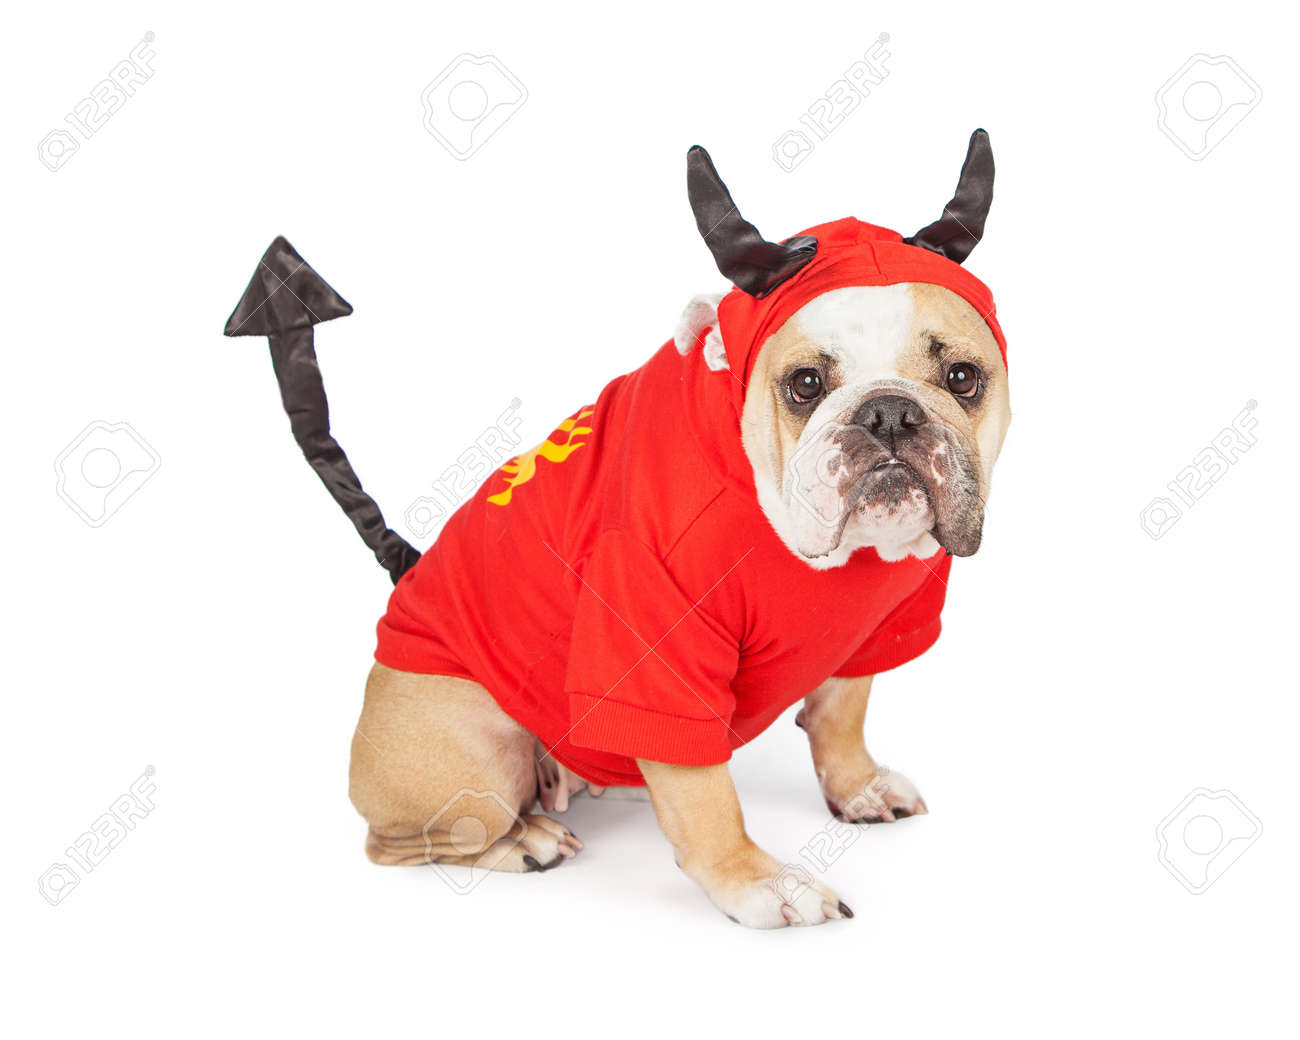 Funny Bulldog Breed Dog Wearing A Devil Costume For Halloween ...